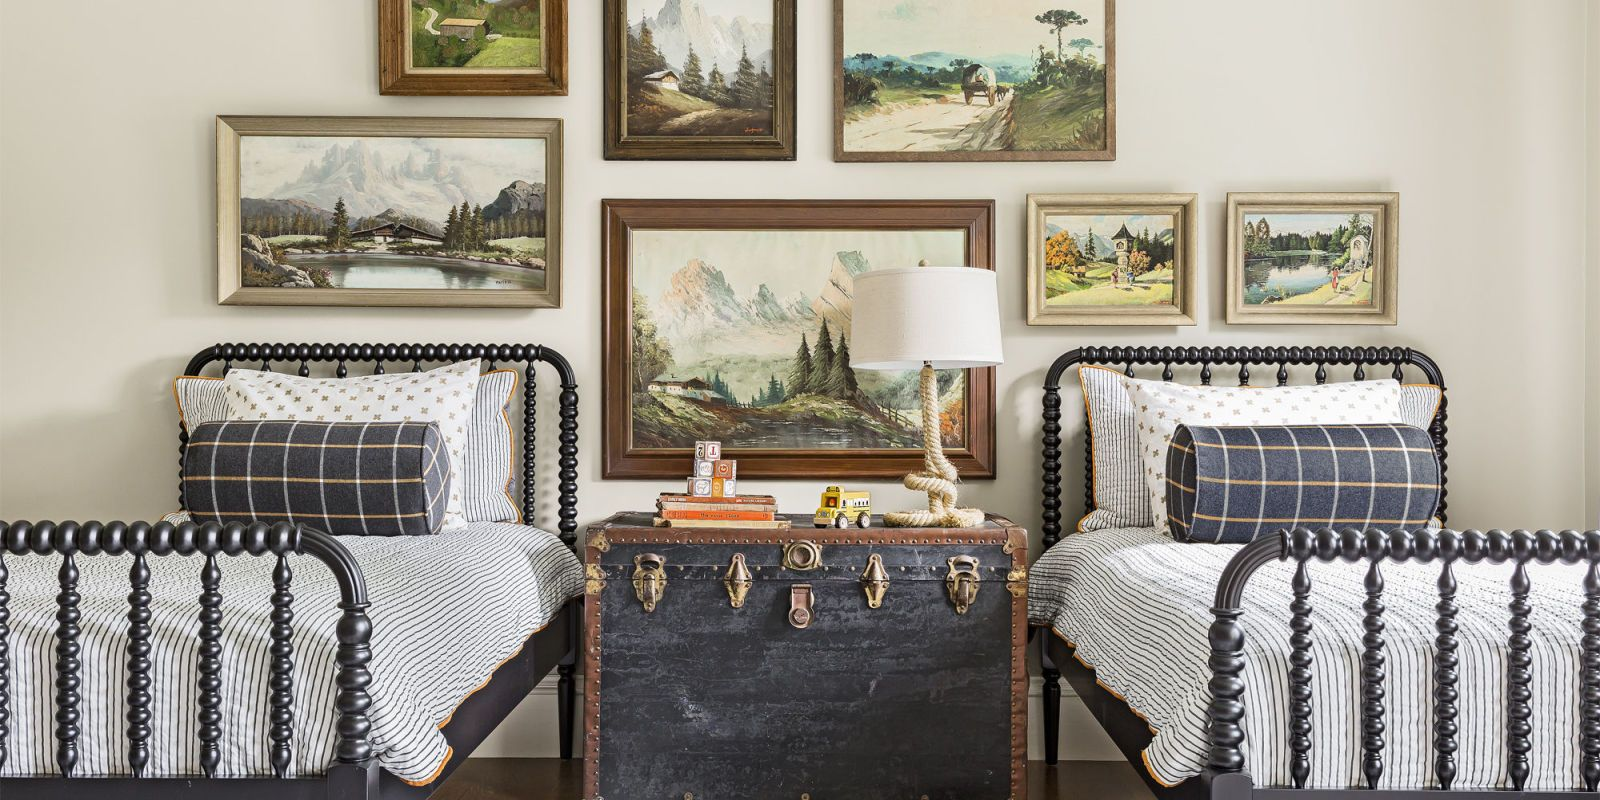 Bedroom Decorating Ideas Fresh On Images of Interior